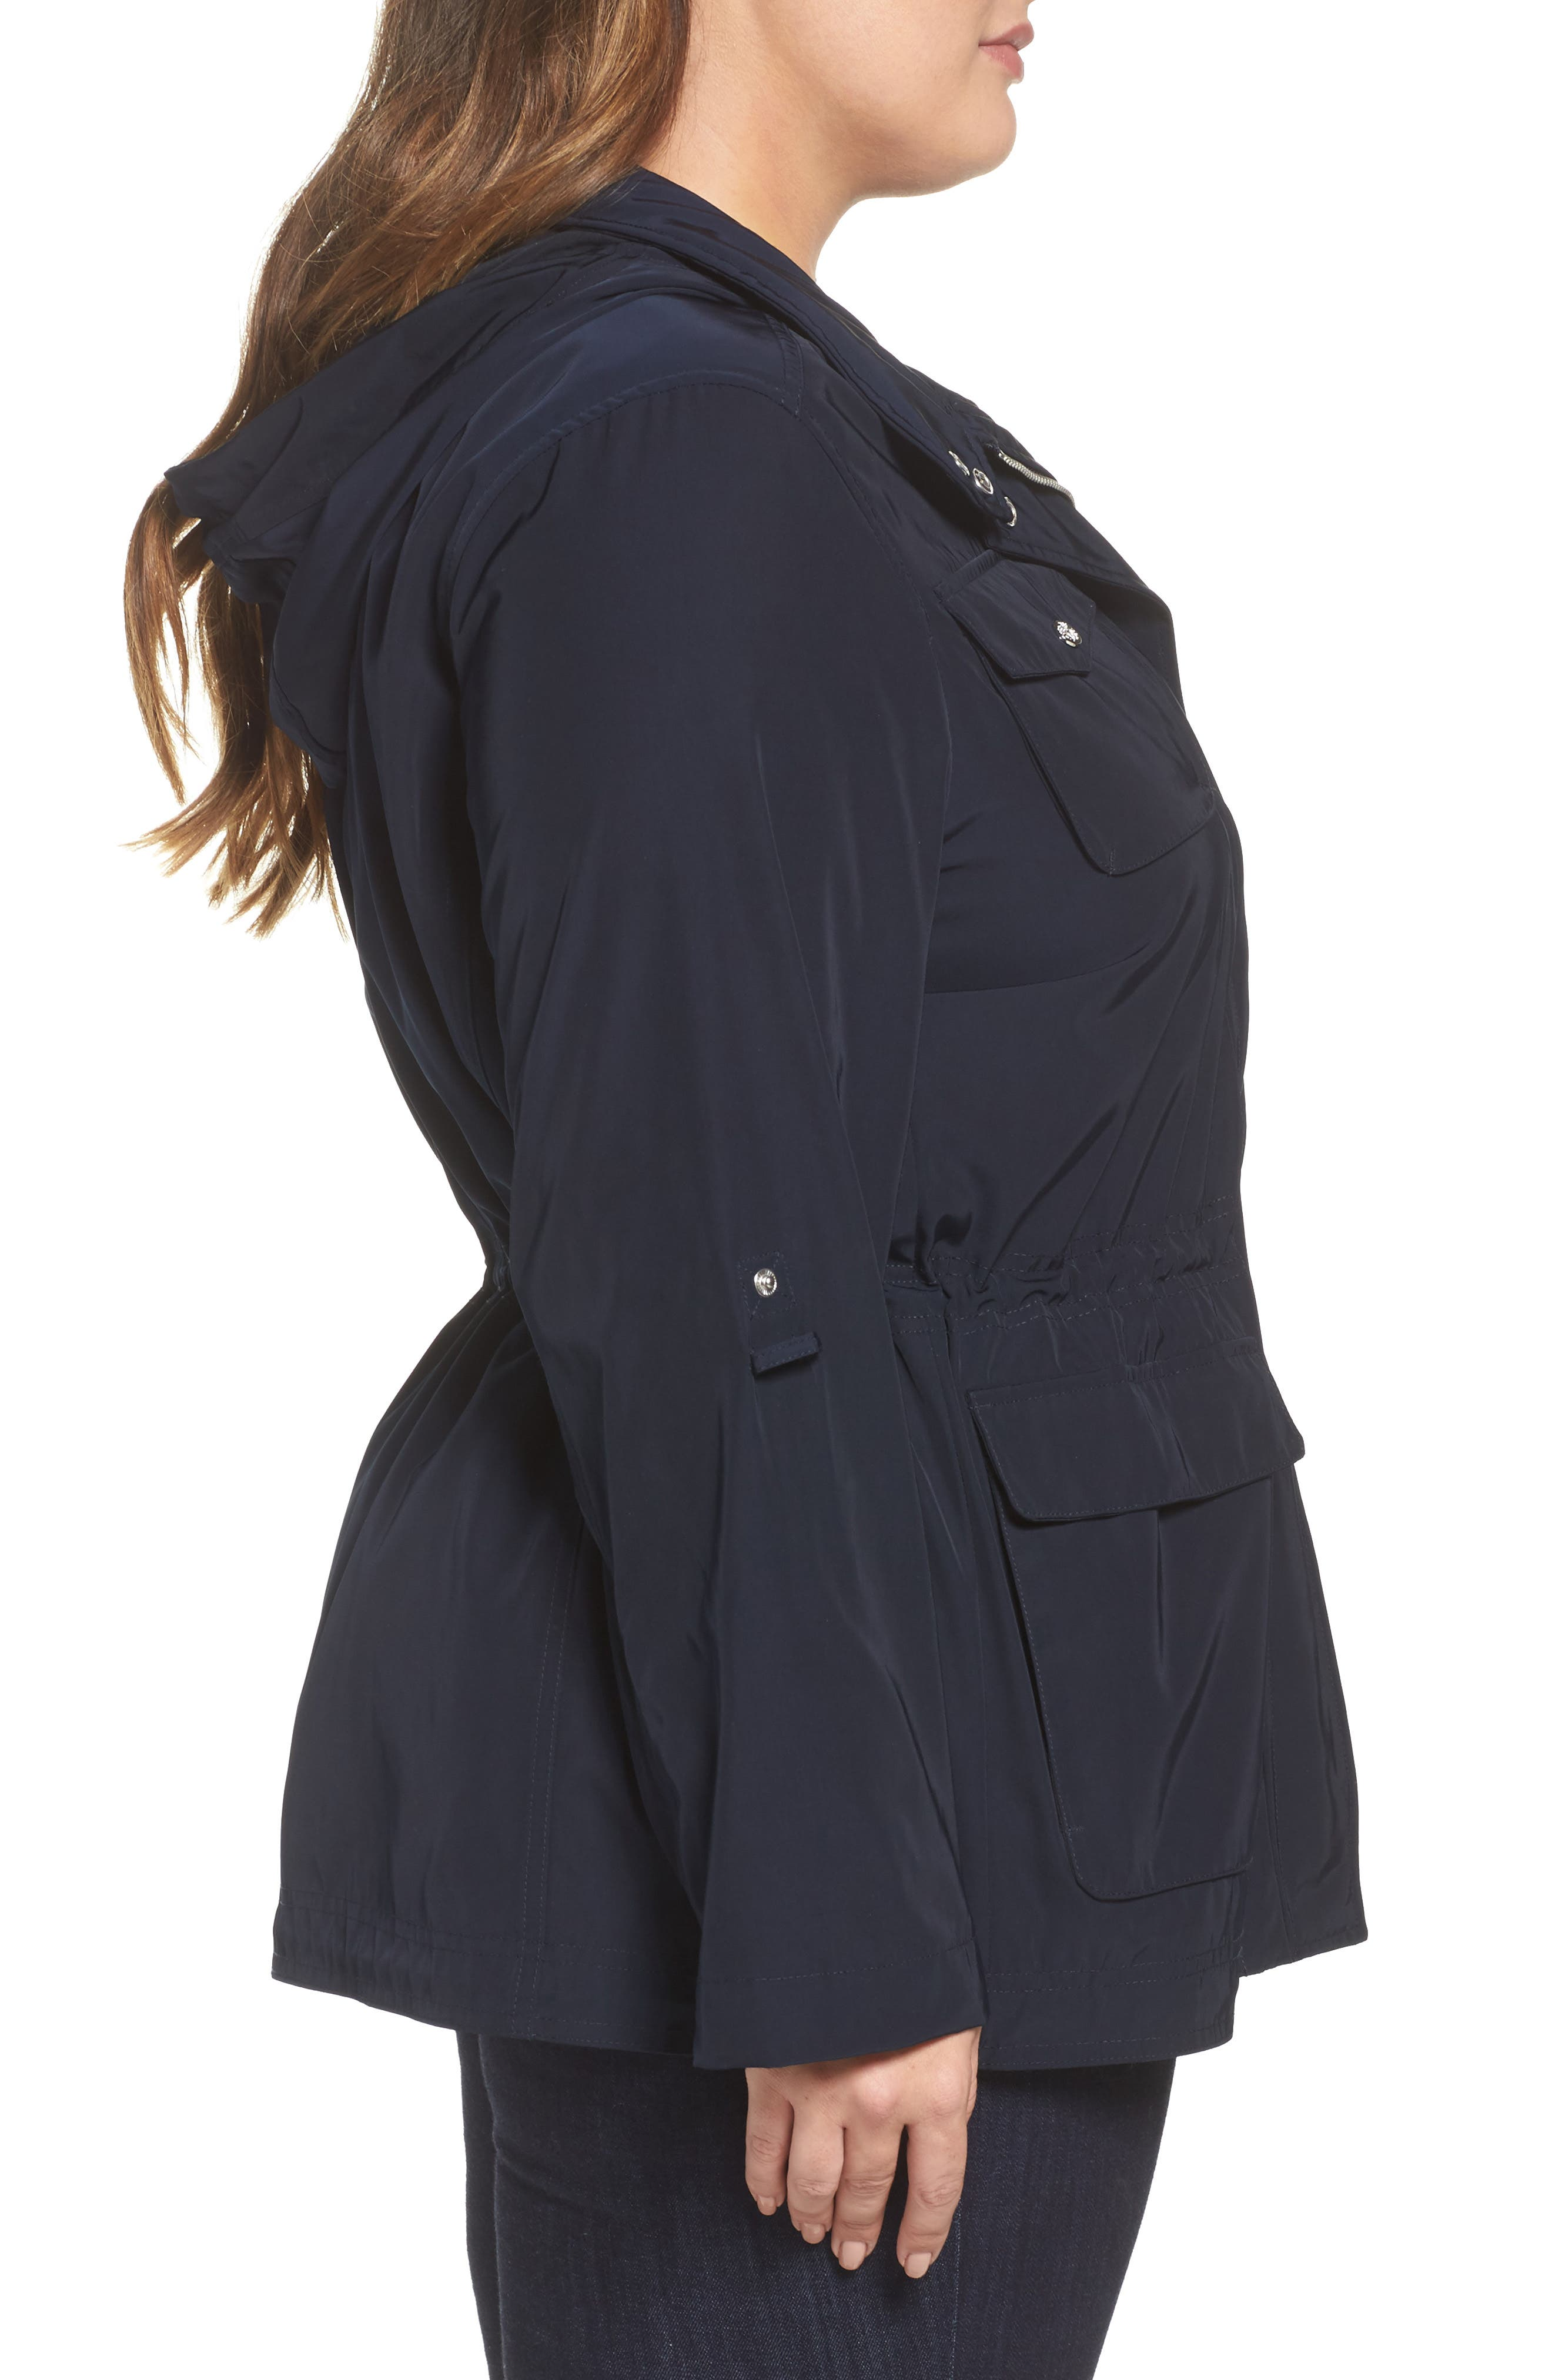 Americana Parka,                             Alternate thumbnail 3, color,                             Navy